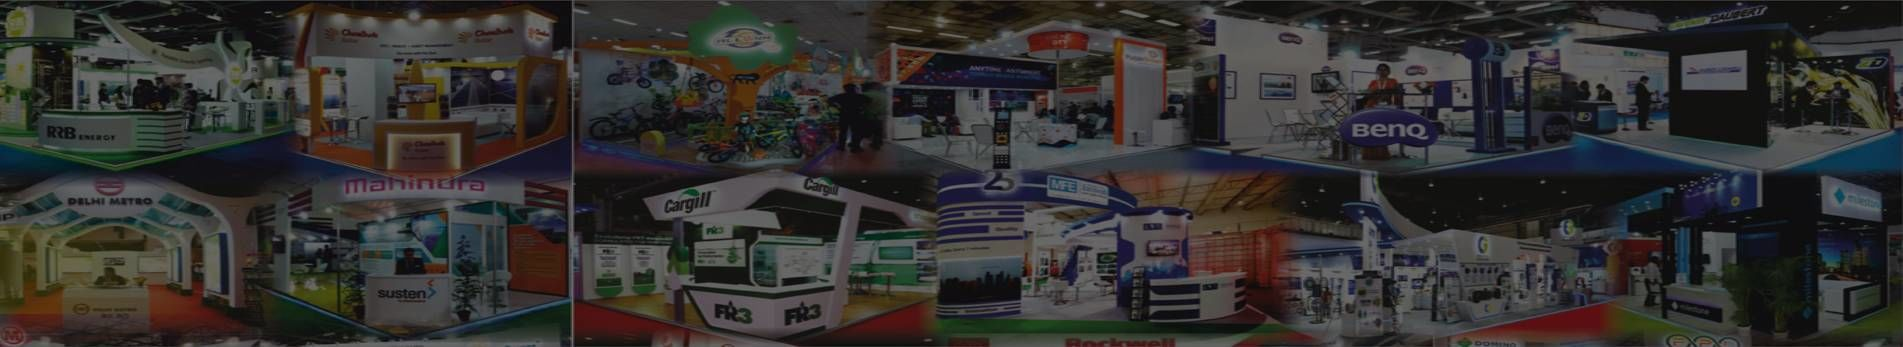 10 Best Exhibition Stall Ideas to Connect With the Audience - Panache Exhibitions